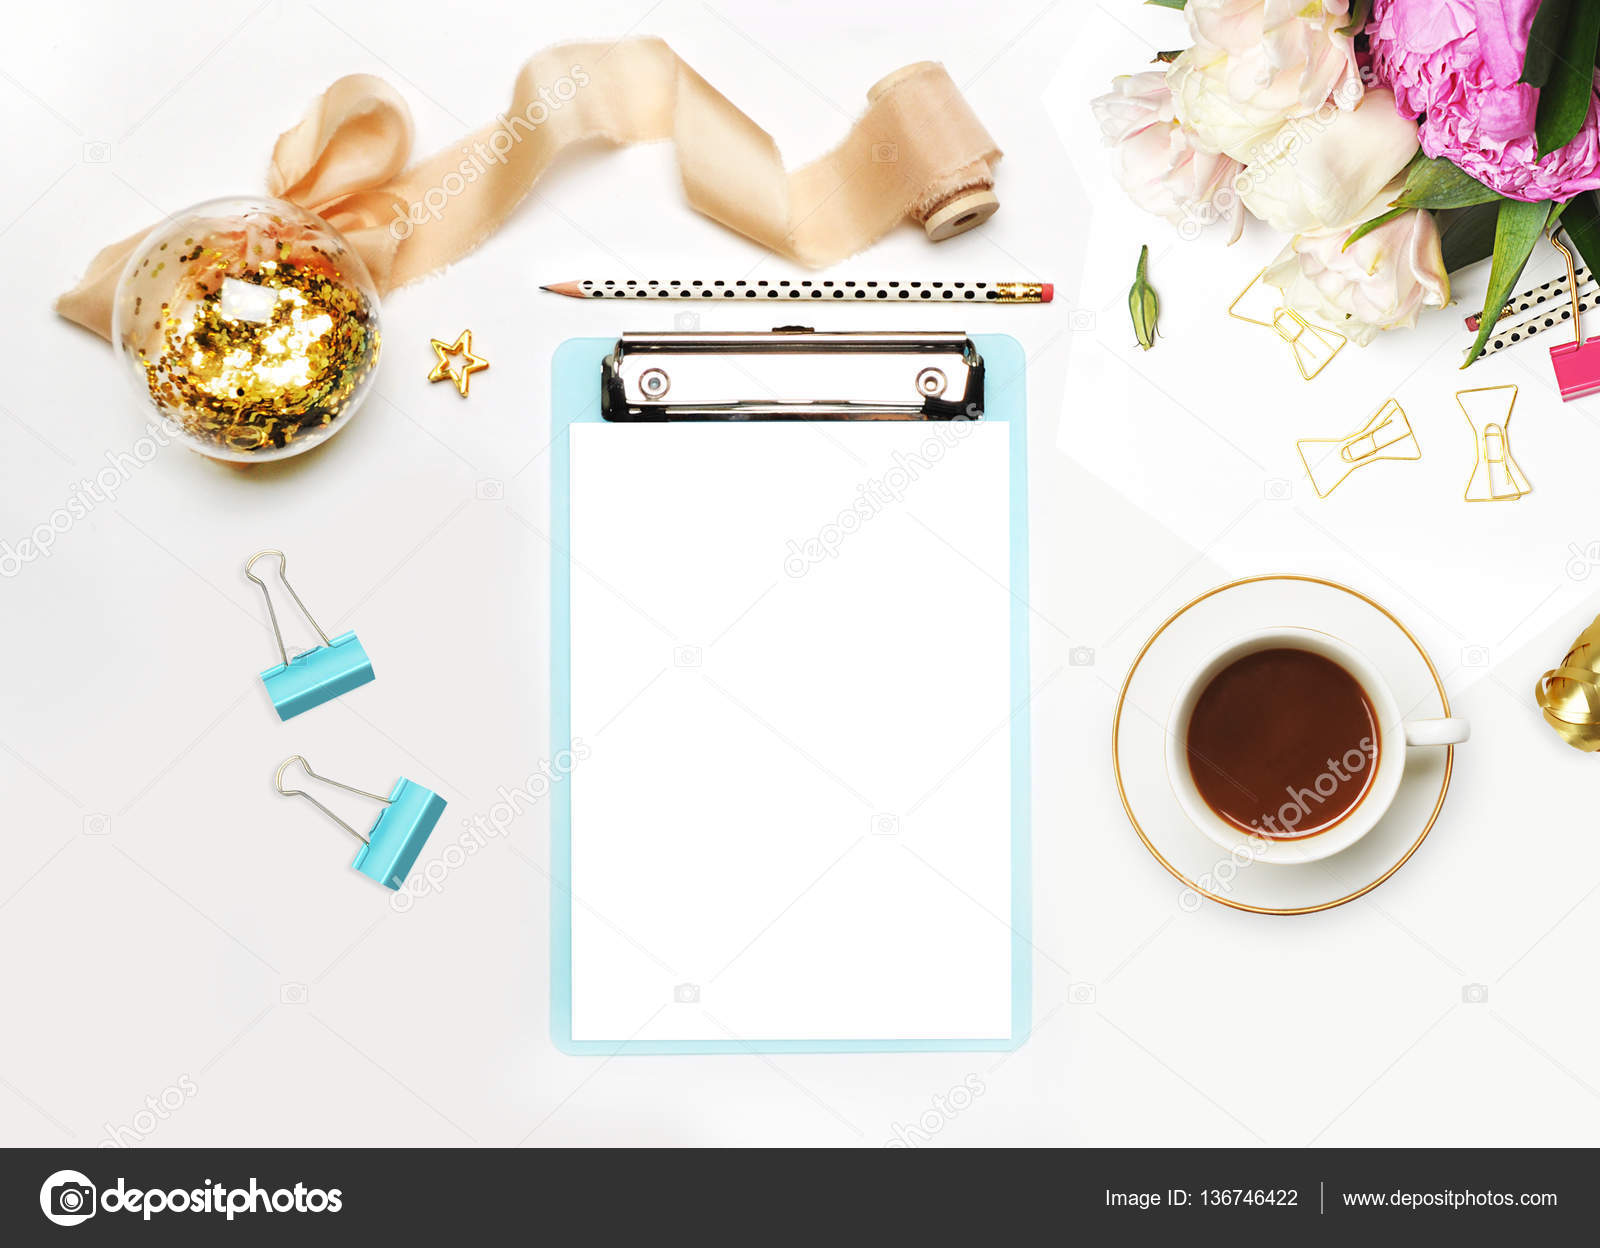 6942bd7d7d Mockup planner flat lay. Accessory on the table. View top. White  background